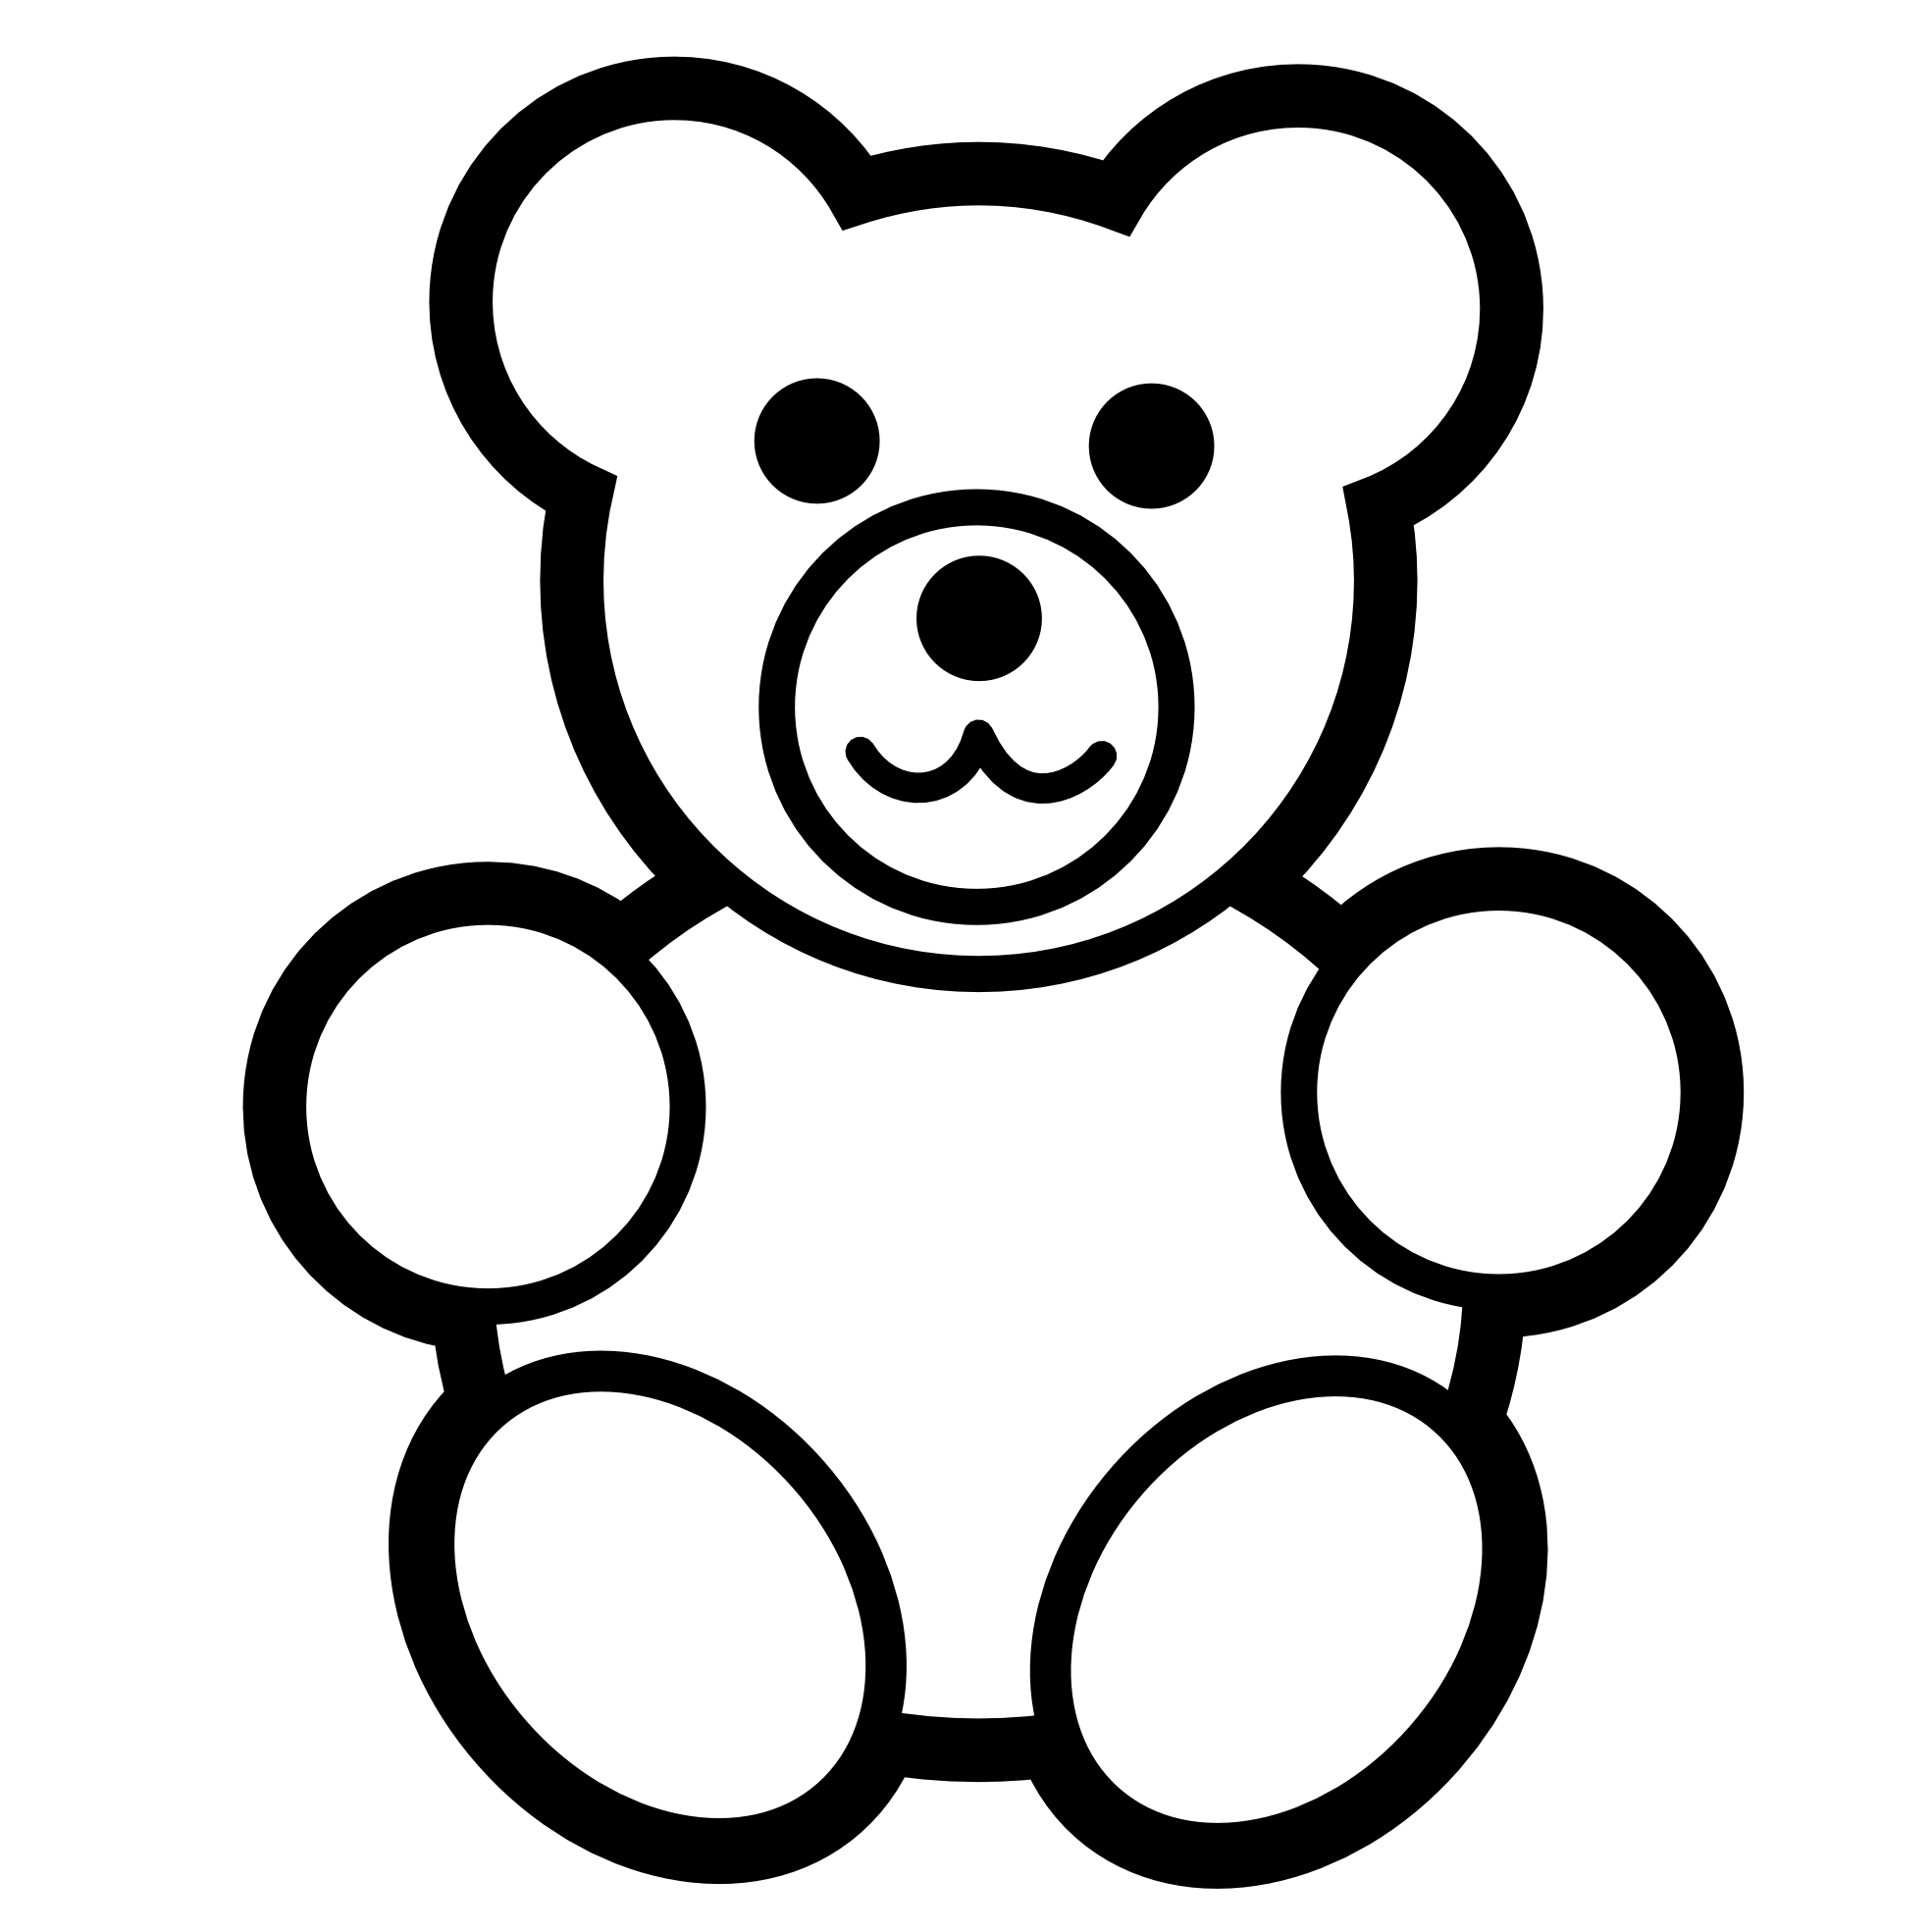 Christmas bow clipart black and white svg freeuse stock 28+ Collection of Free Teddy Bear Clipart Black And White | High ... svg freeuse stock